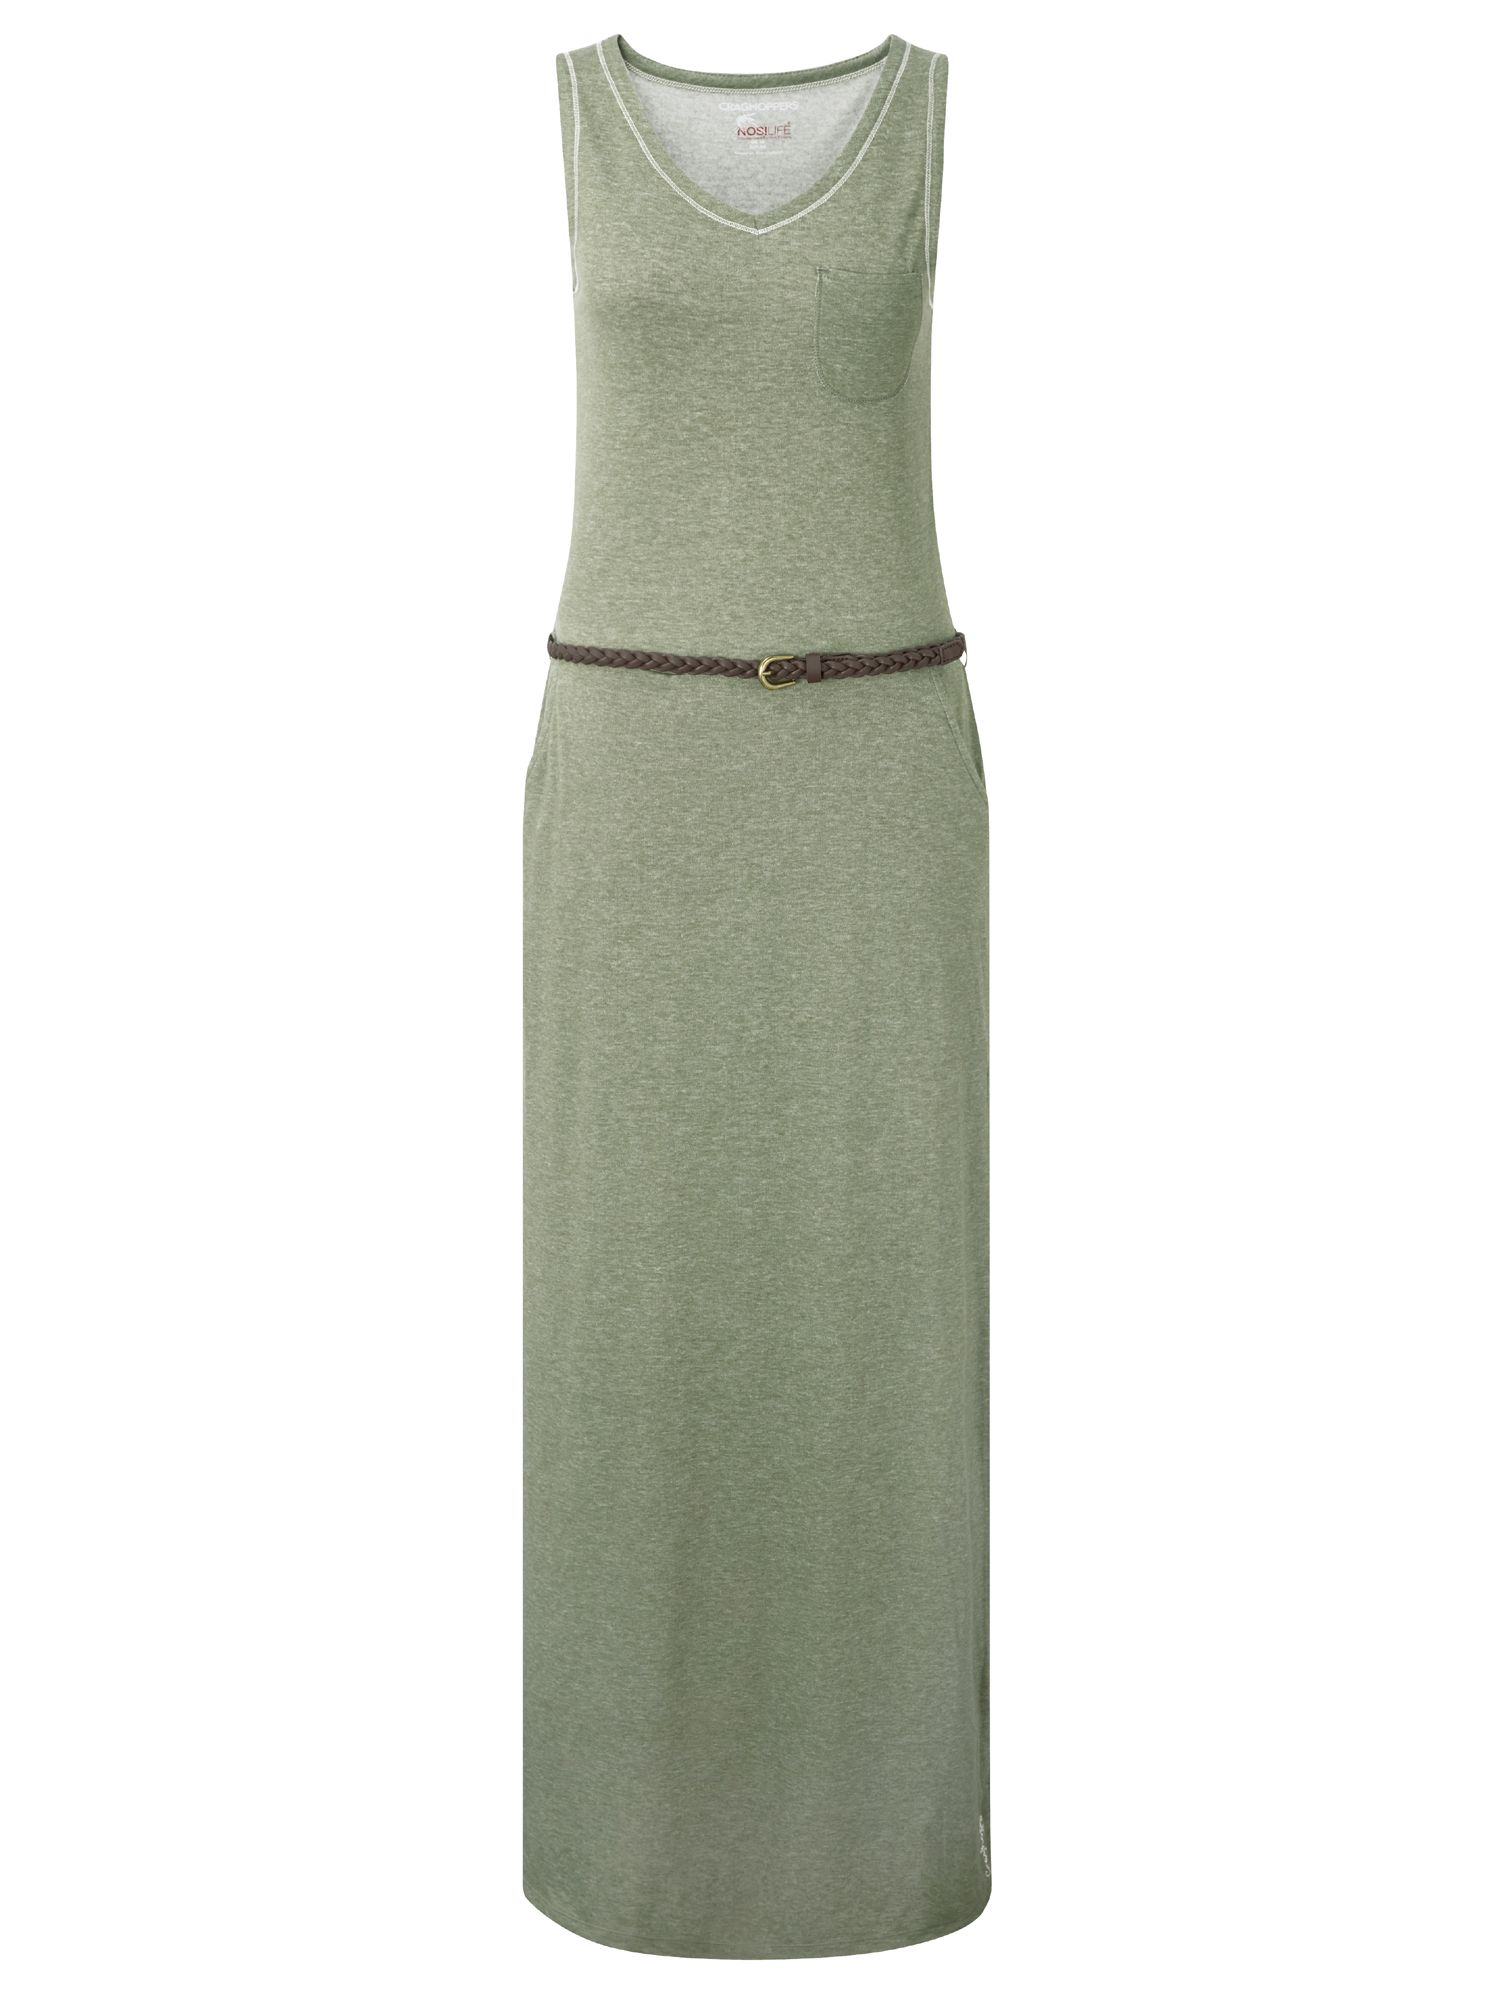 Craghoppers Craghoppers NosiLife Aimee Maxidress, Green